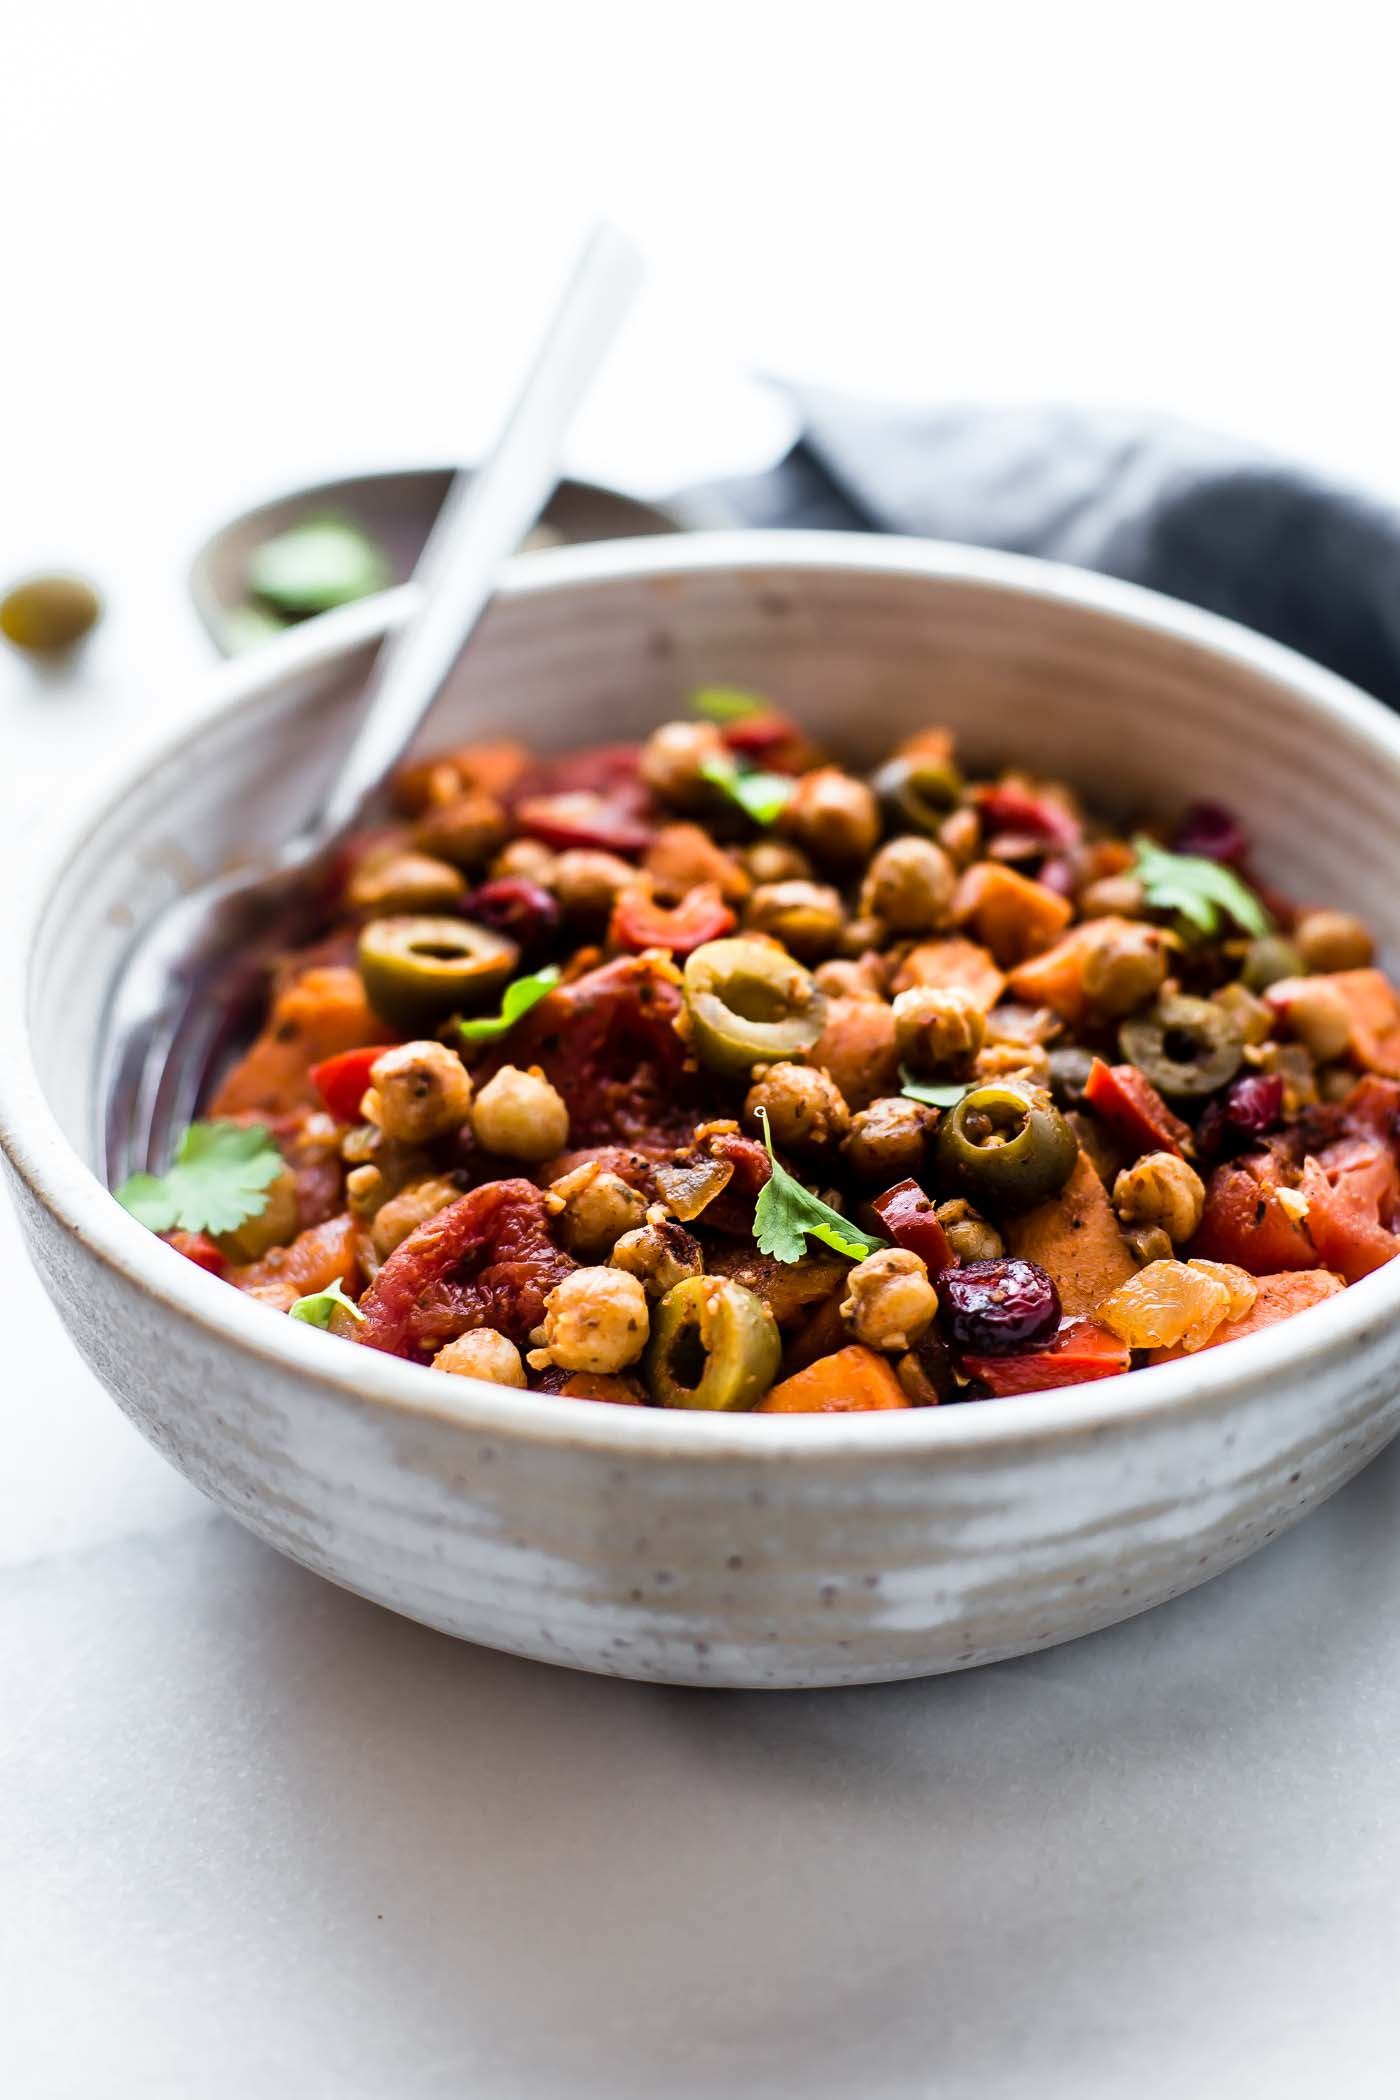 Cuban sweet potato picadillo bowls vegan cotter crunch gluten these cuban sweet potato picadillo bowls make for a wholesome latin inspired weeknight meal forumfinder